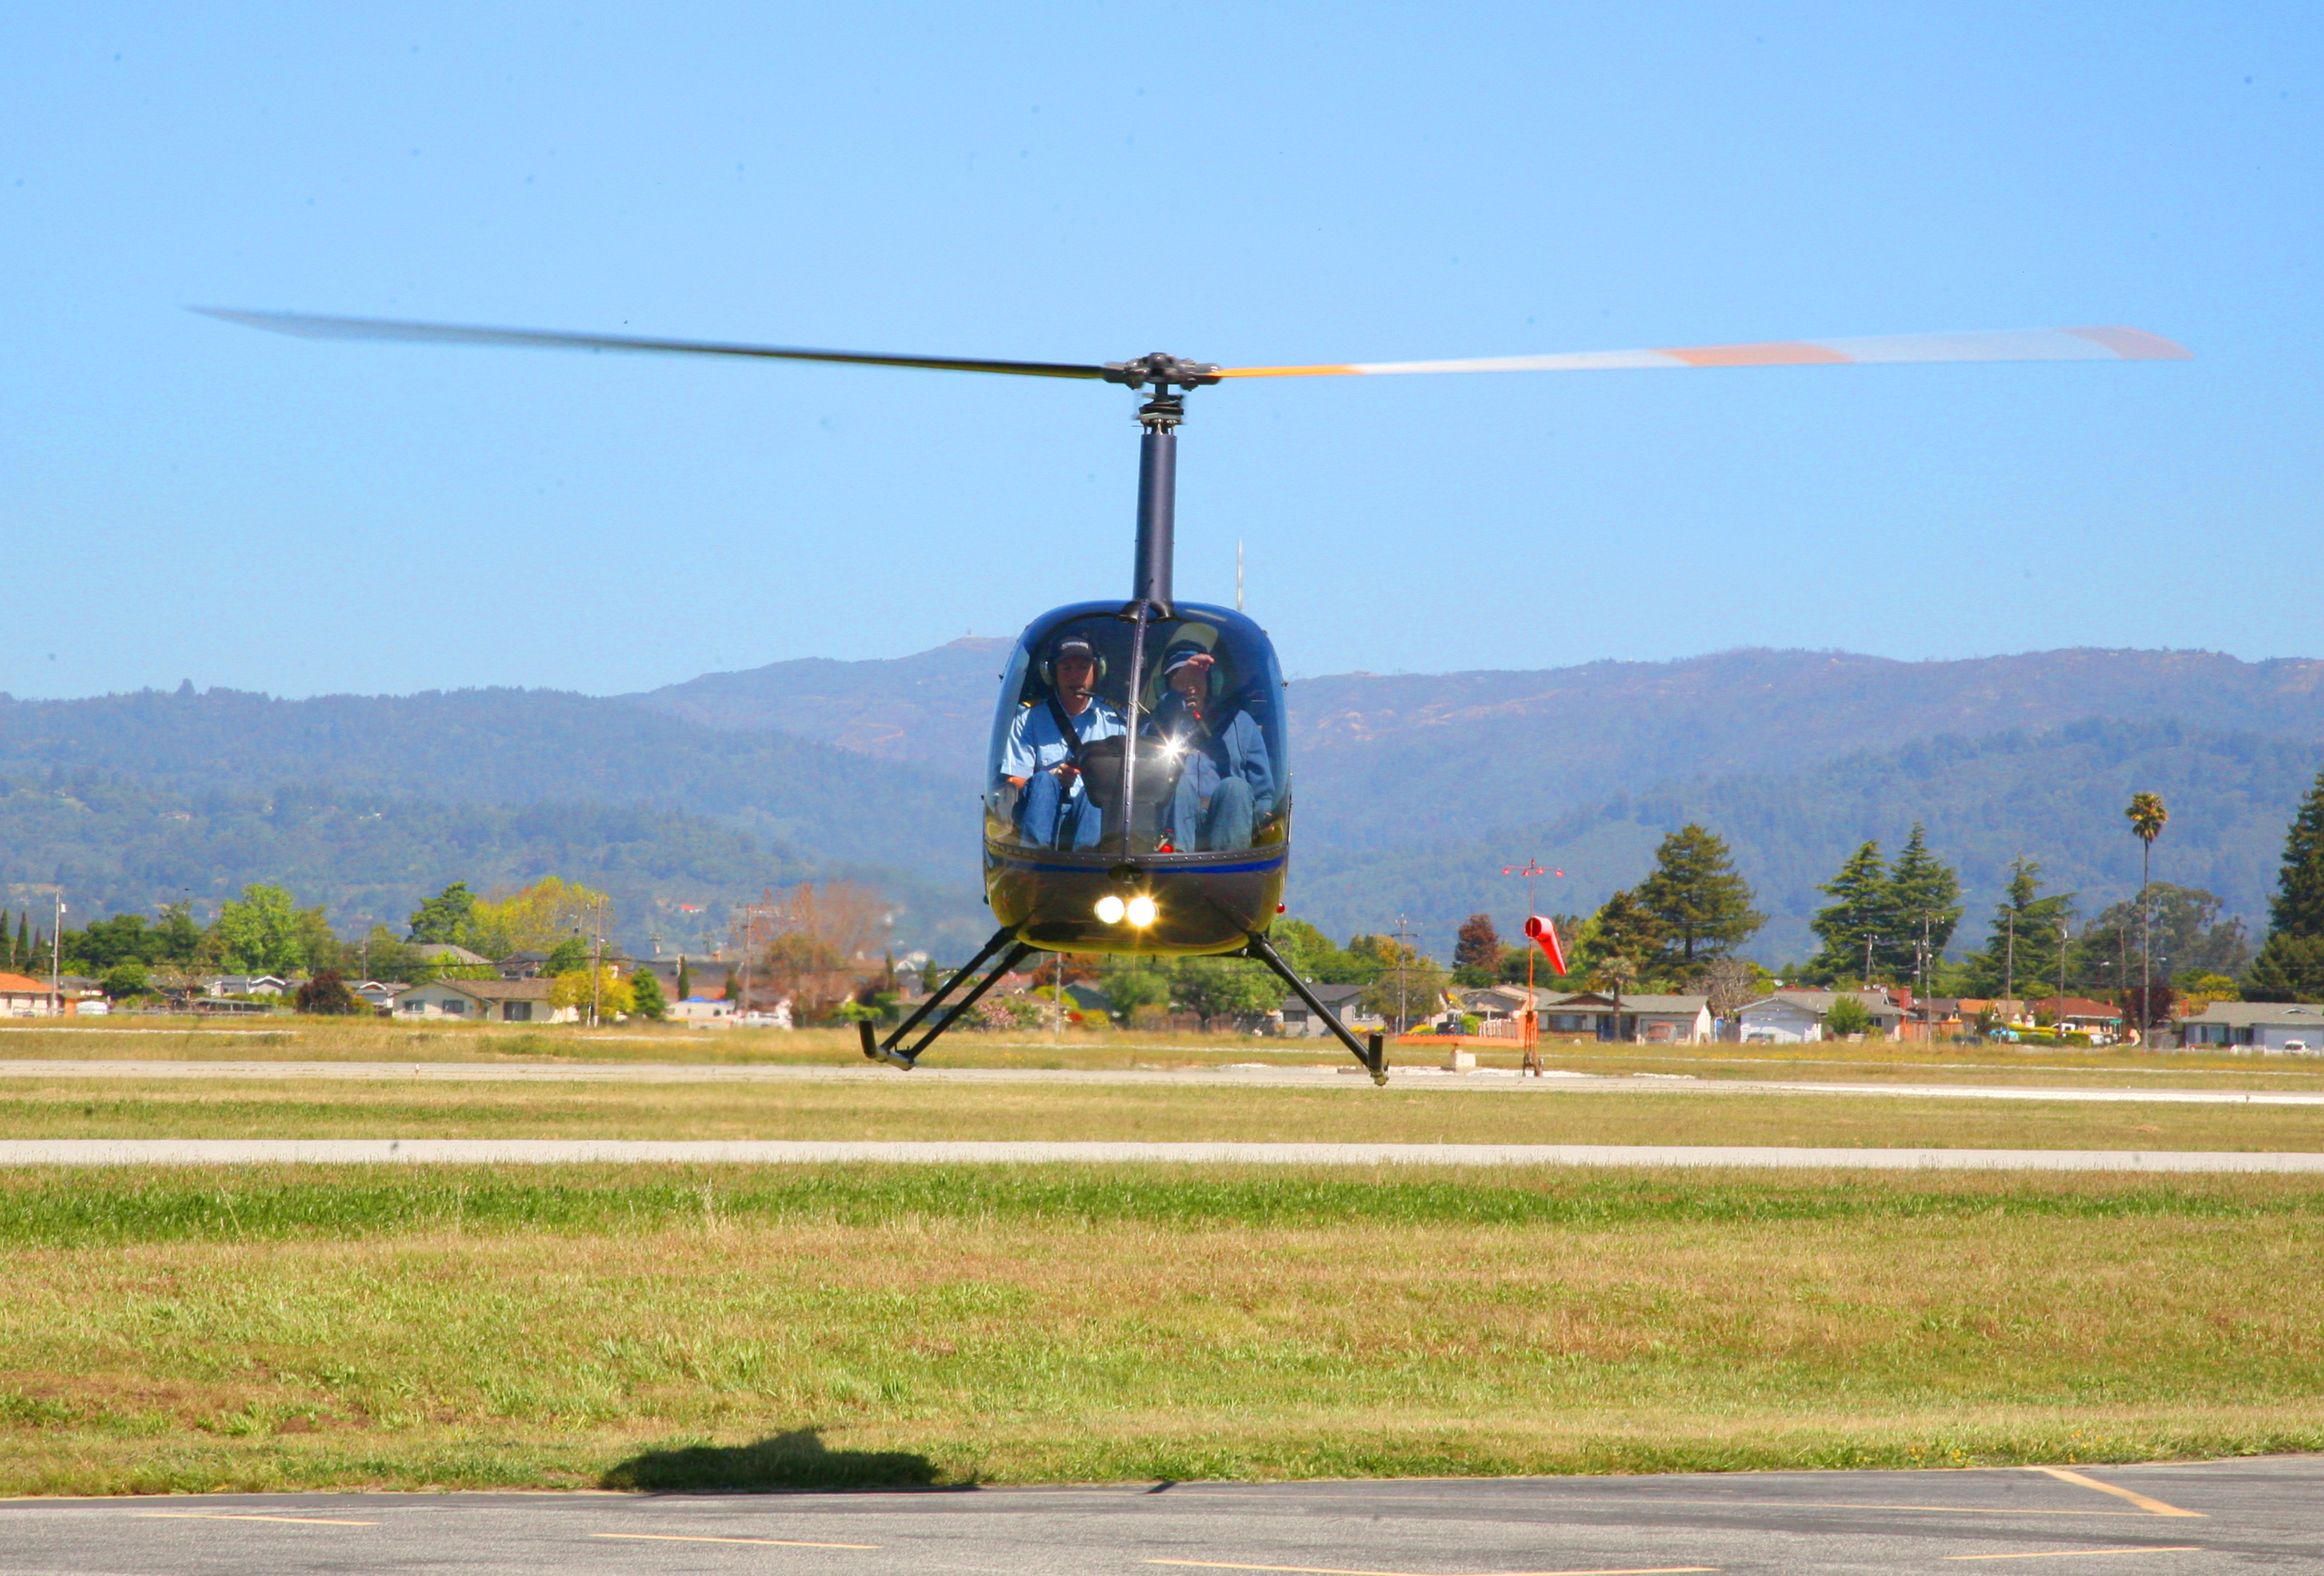 robinson helicopters australia with The Ten Most Important Helicopters on Nautilus Aviation Helicopter Press Release besides Photos likewise September 2014 as well melbournehelicoptercharter also The Ten Most Important Helicopters.